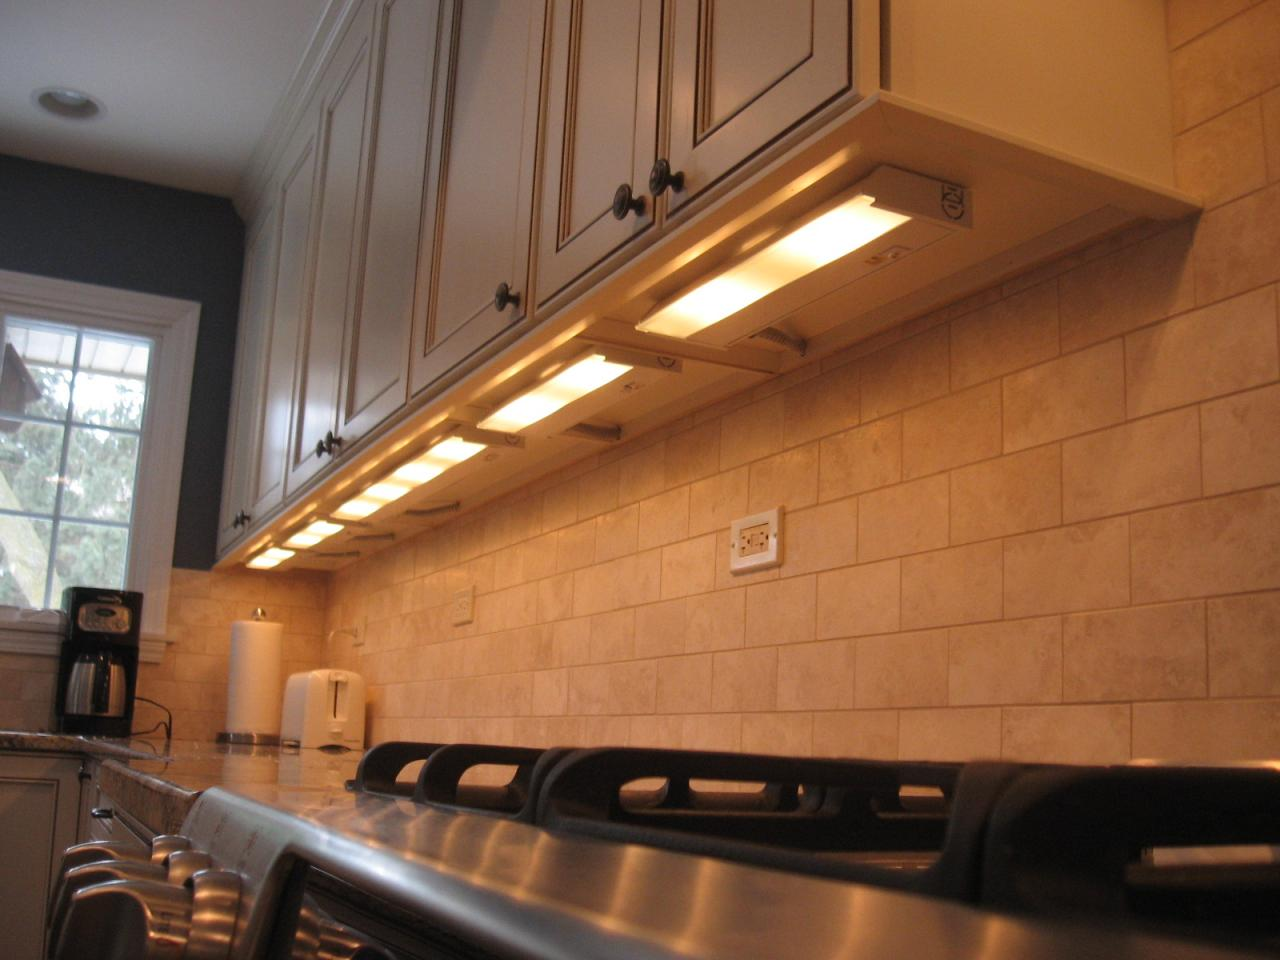 under shelf lighting. kitchencoolkitchenundercabinetlightingideadazzling under shelf lighting r